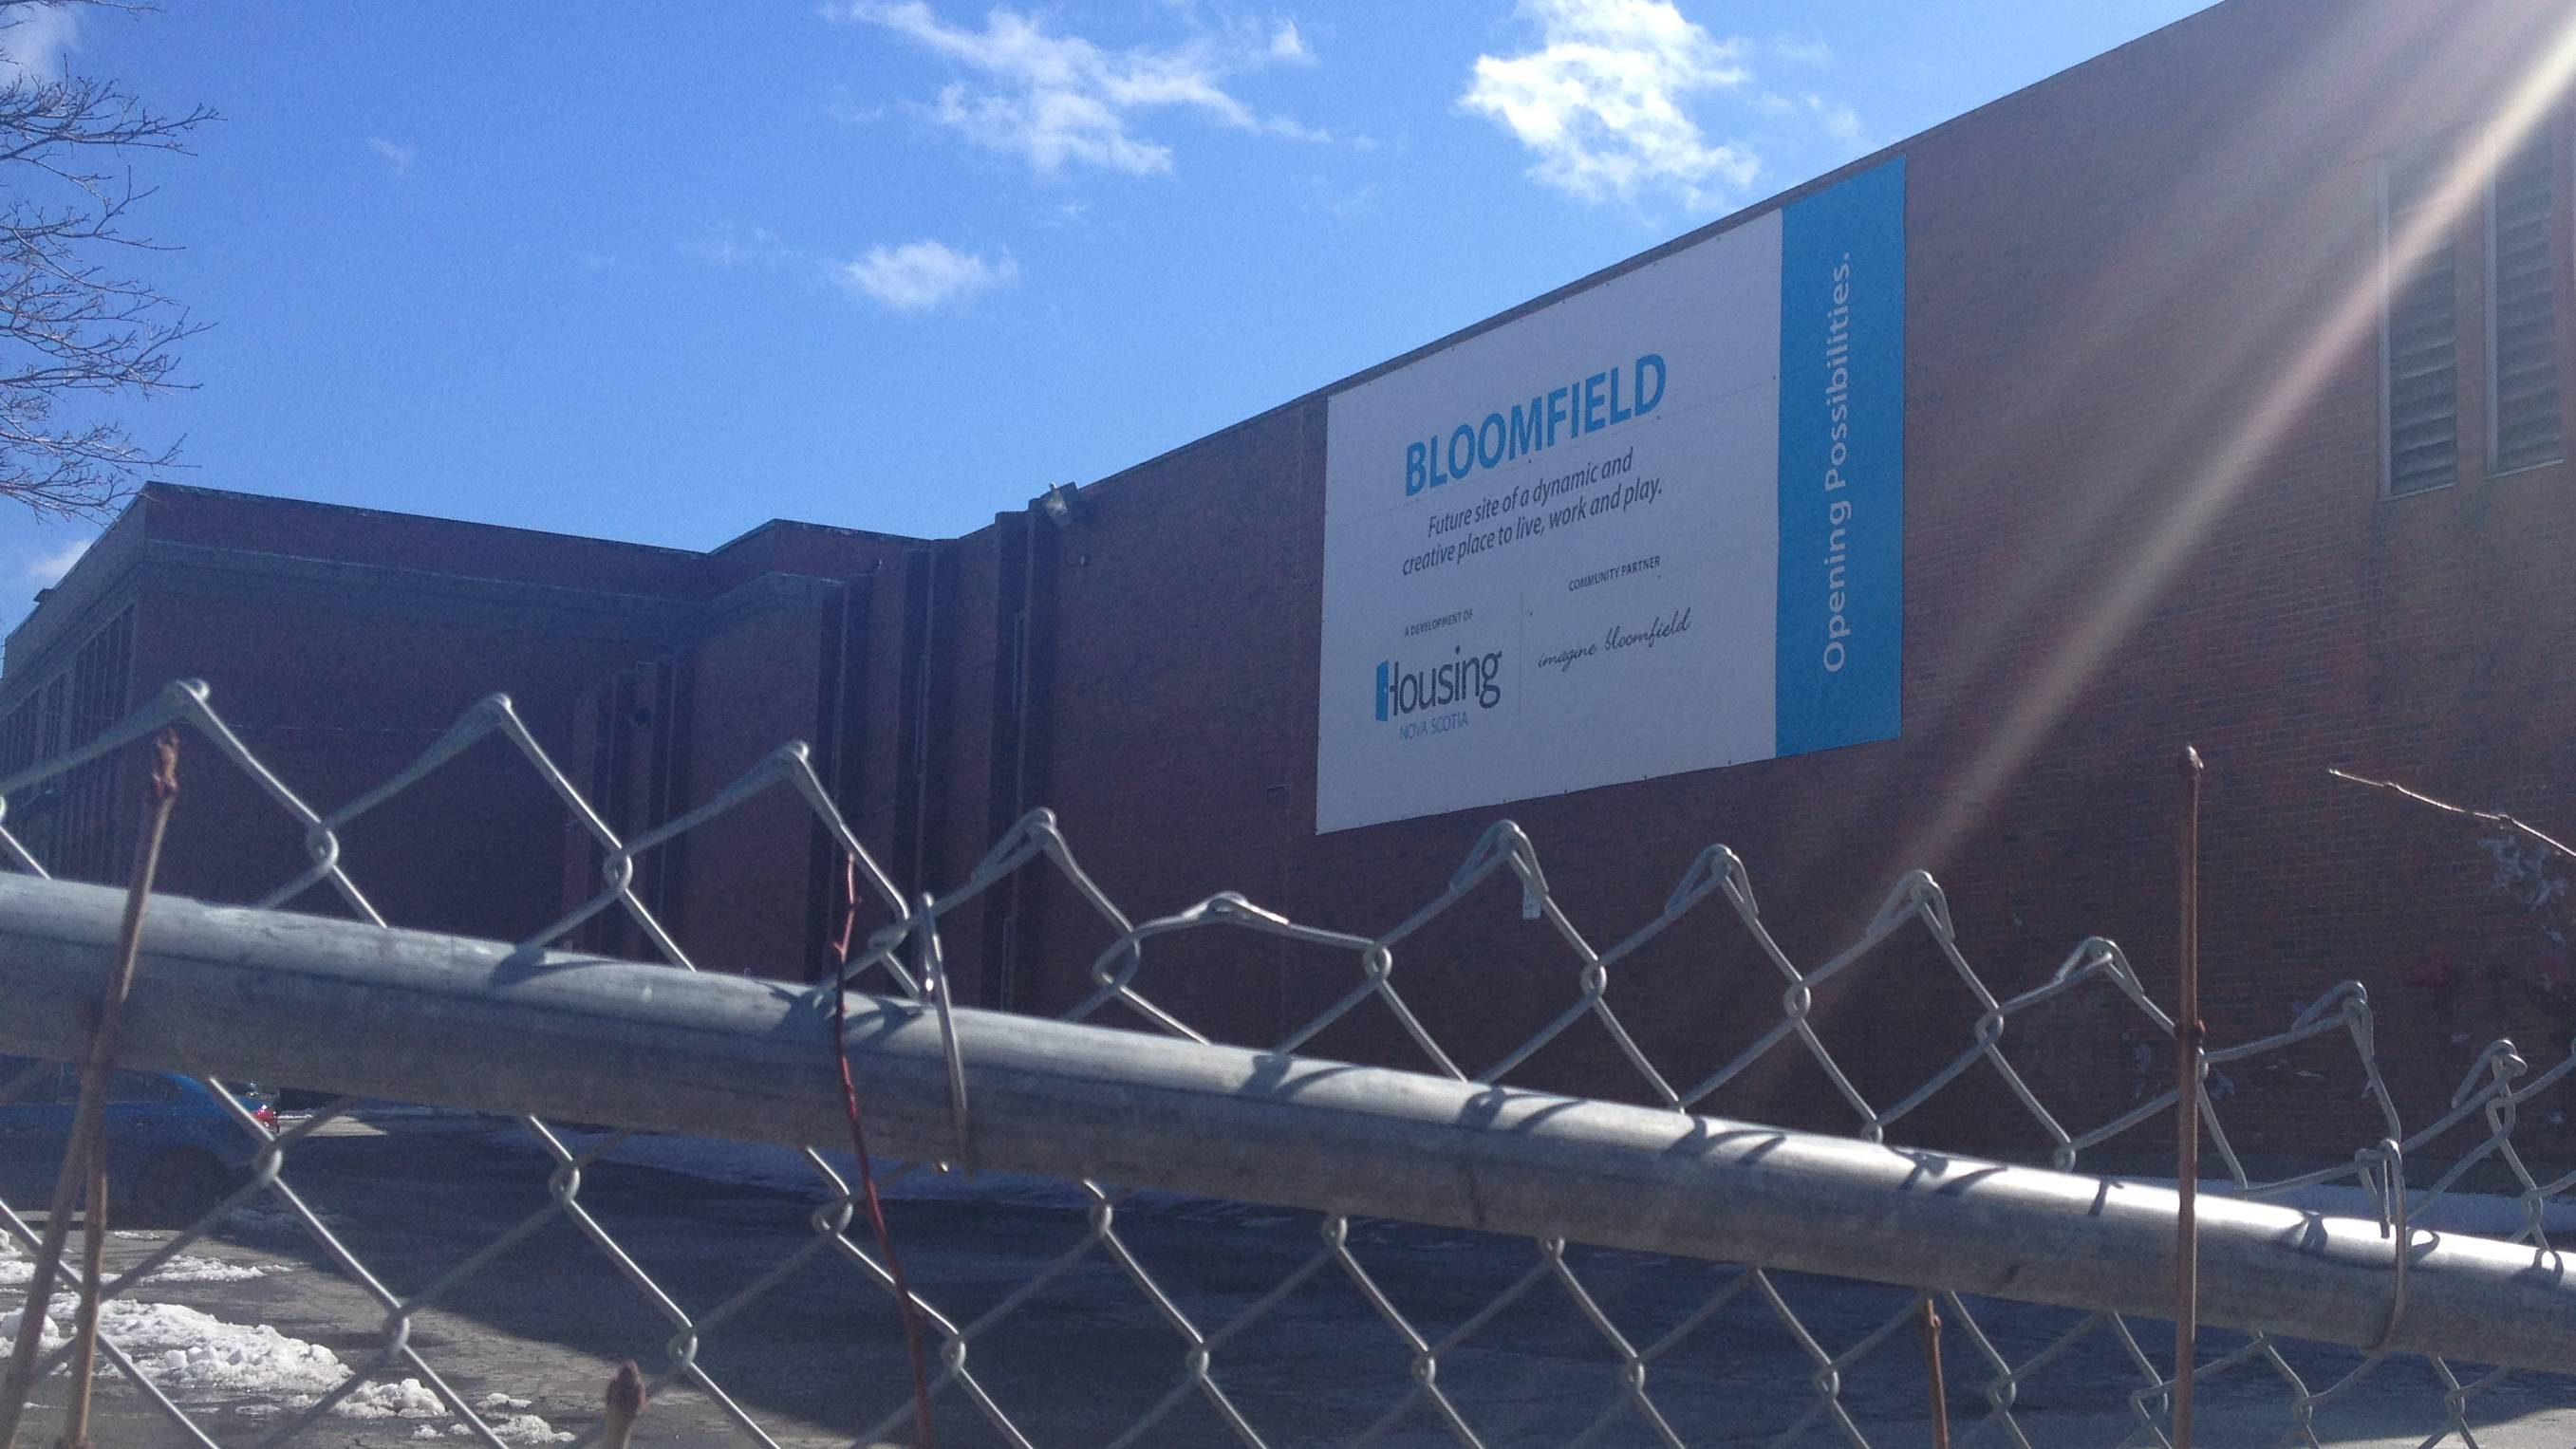 The Bloomfield development will feature housing units of different prices and sizes, as well as commercial spaces.